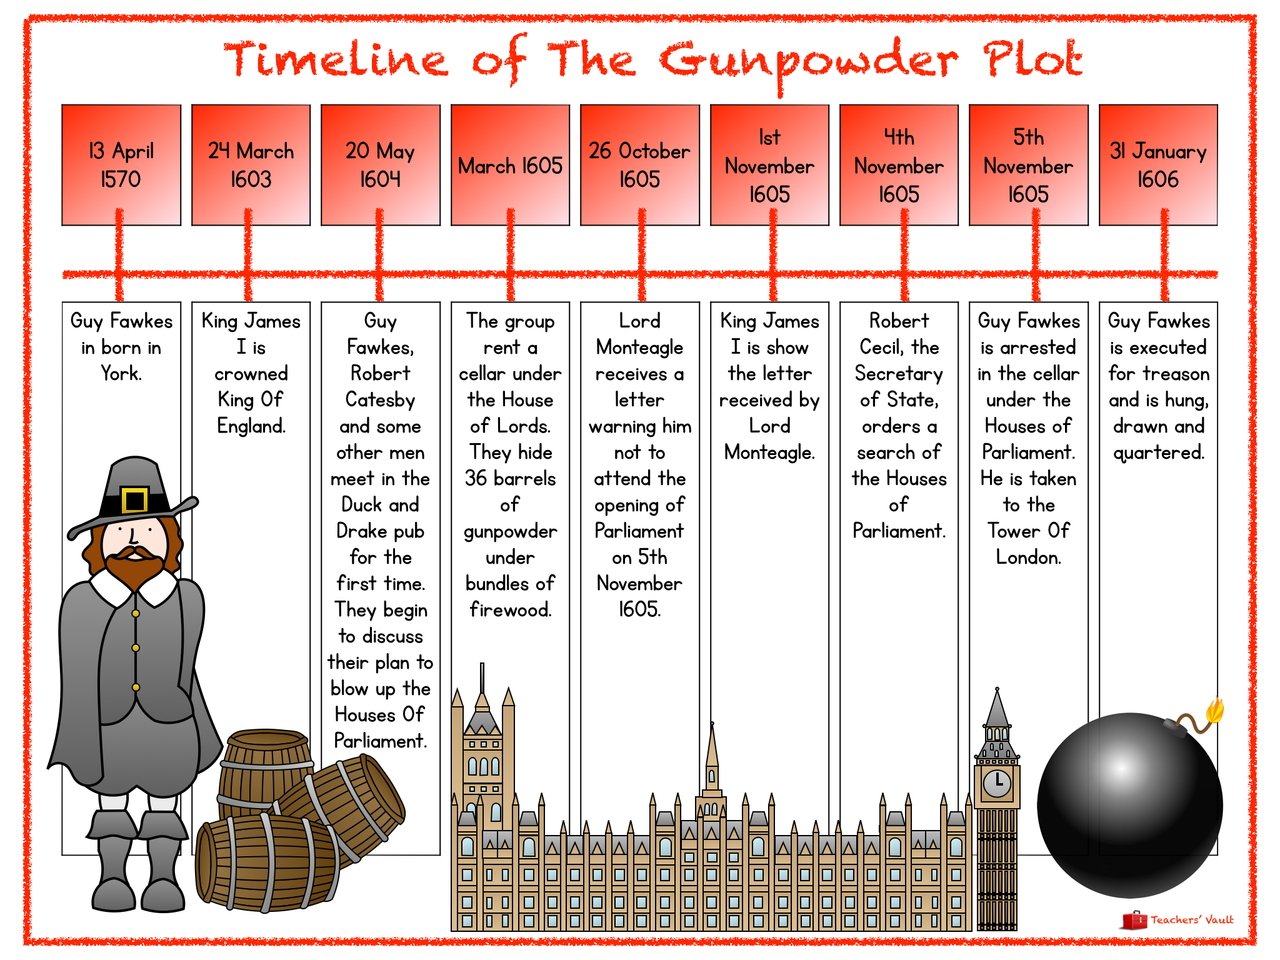 Gunpowder Plot Timeline